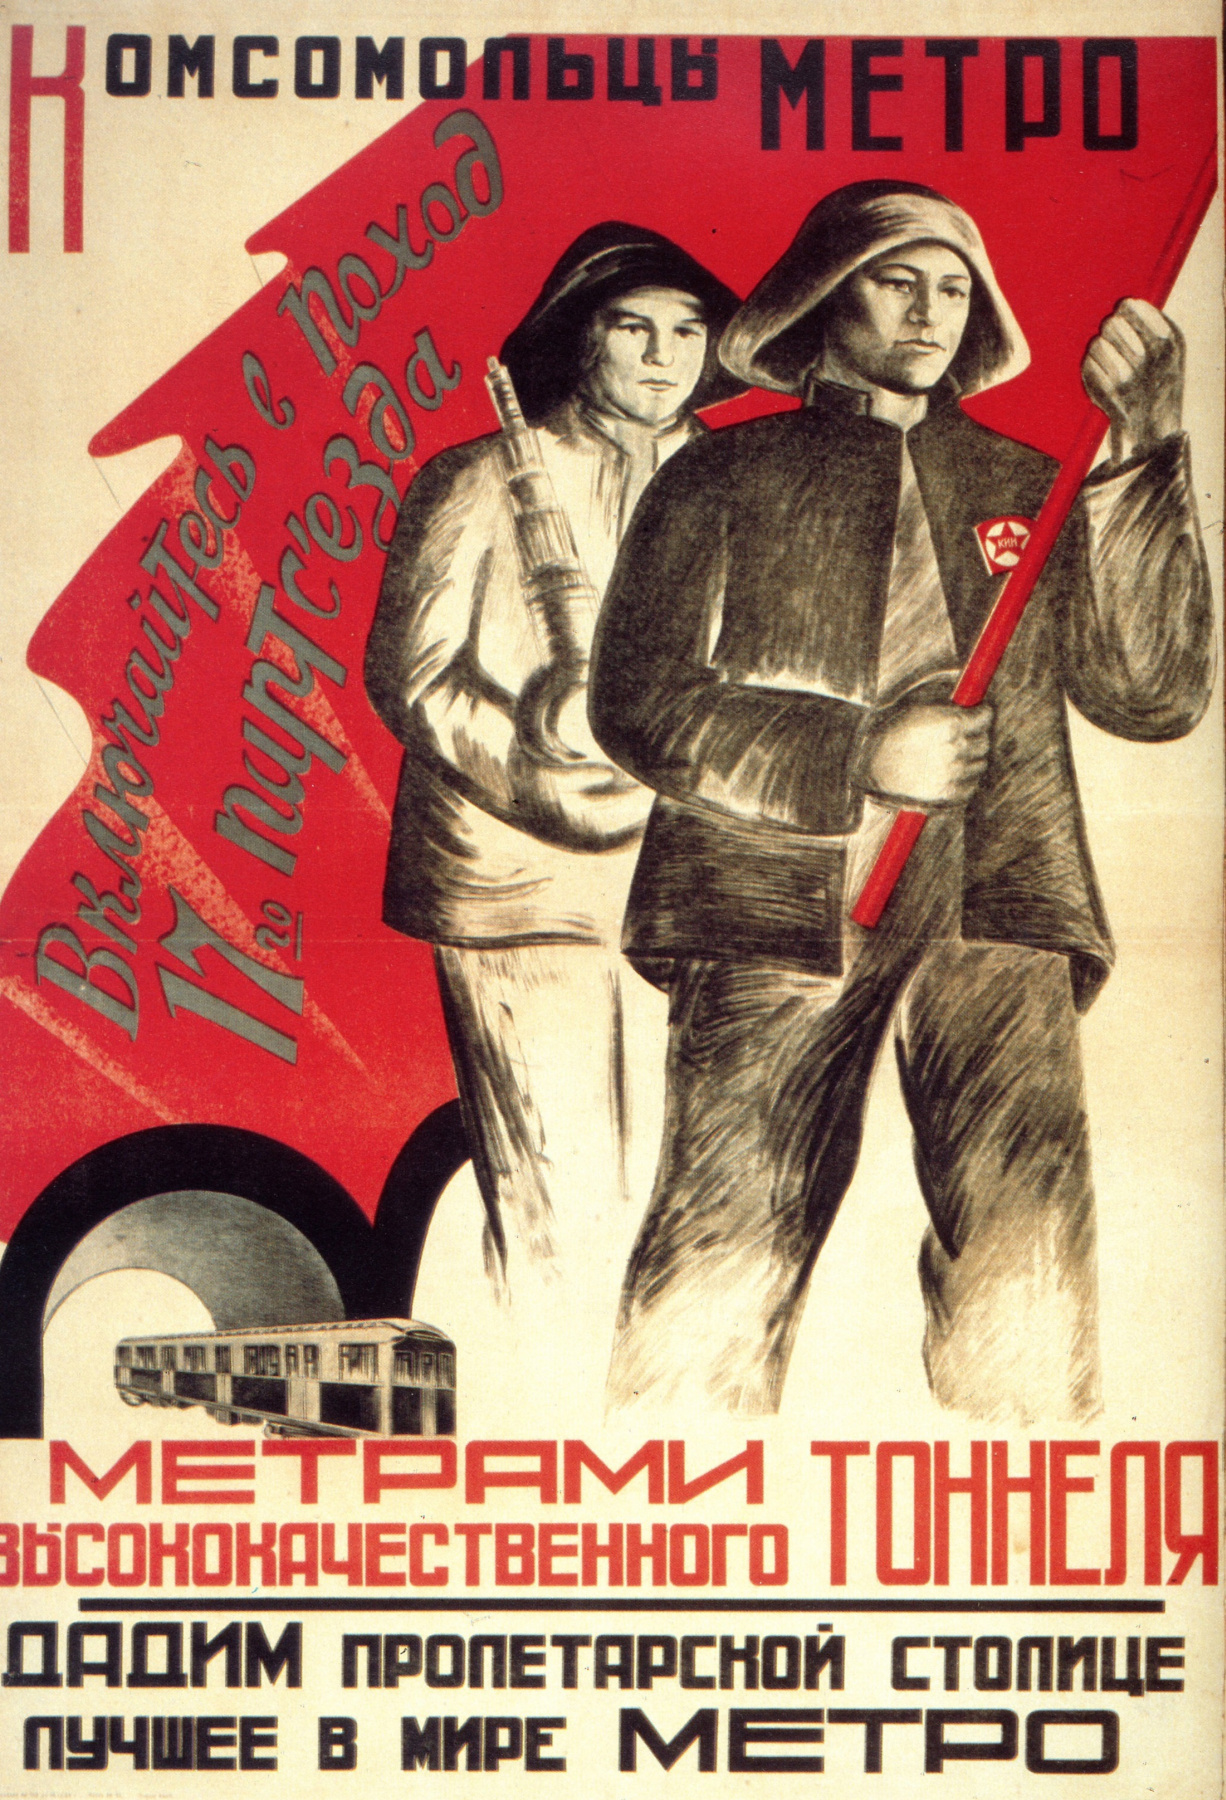 Unknown artist. Komsomol metro! Join the march of the 17th party congress with a high-quality tunnel! We will give the proletarian capital the best metro in the world